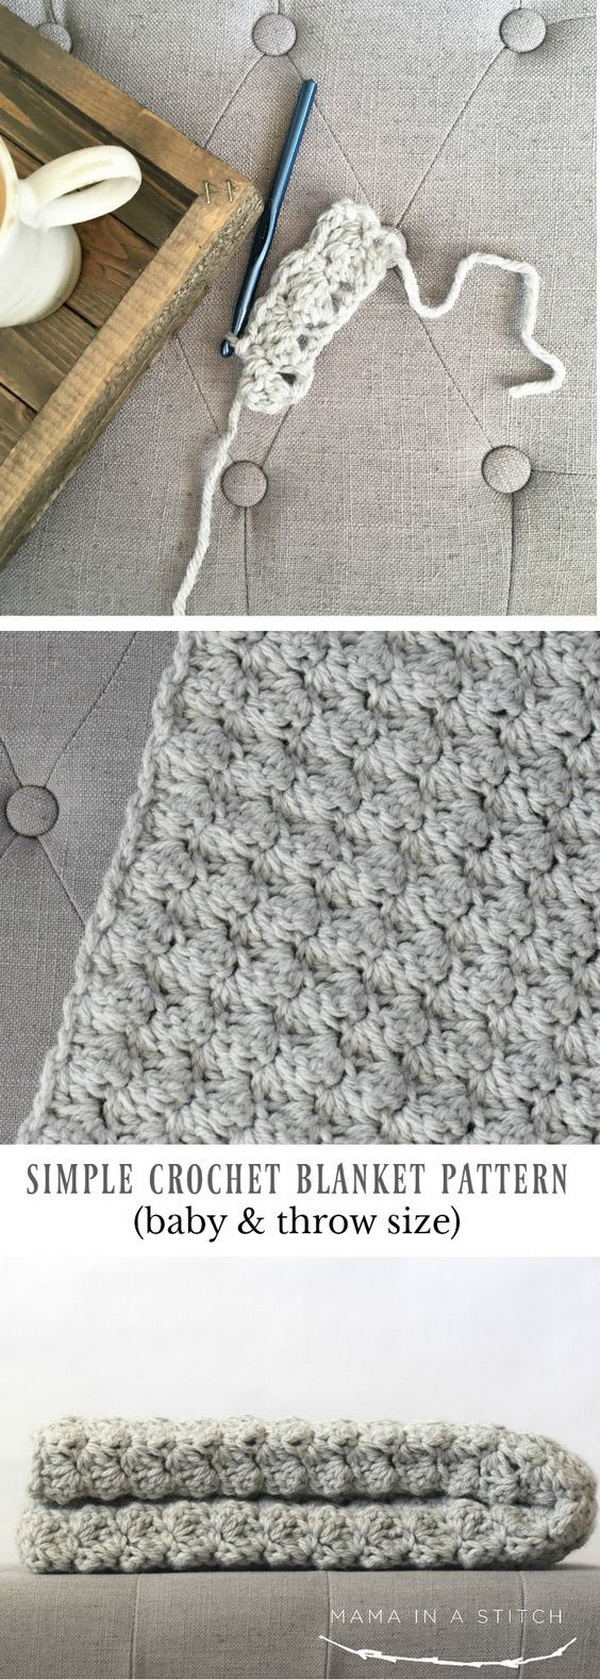 45+ Quick And Easy Crochet Blanket Patterns For Beginners - Listing More